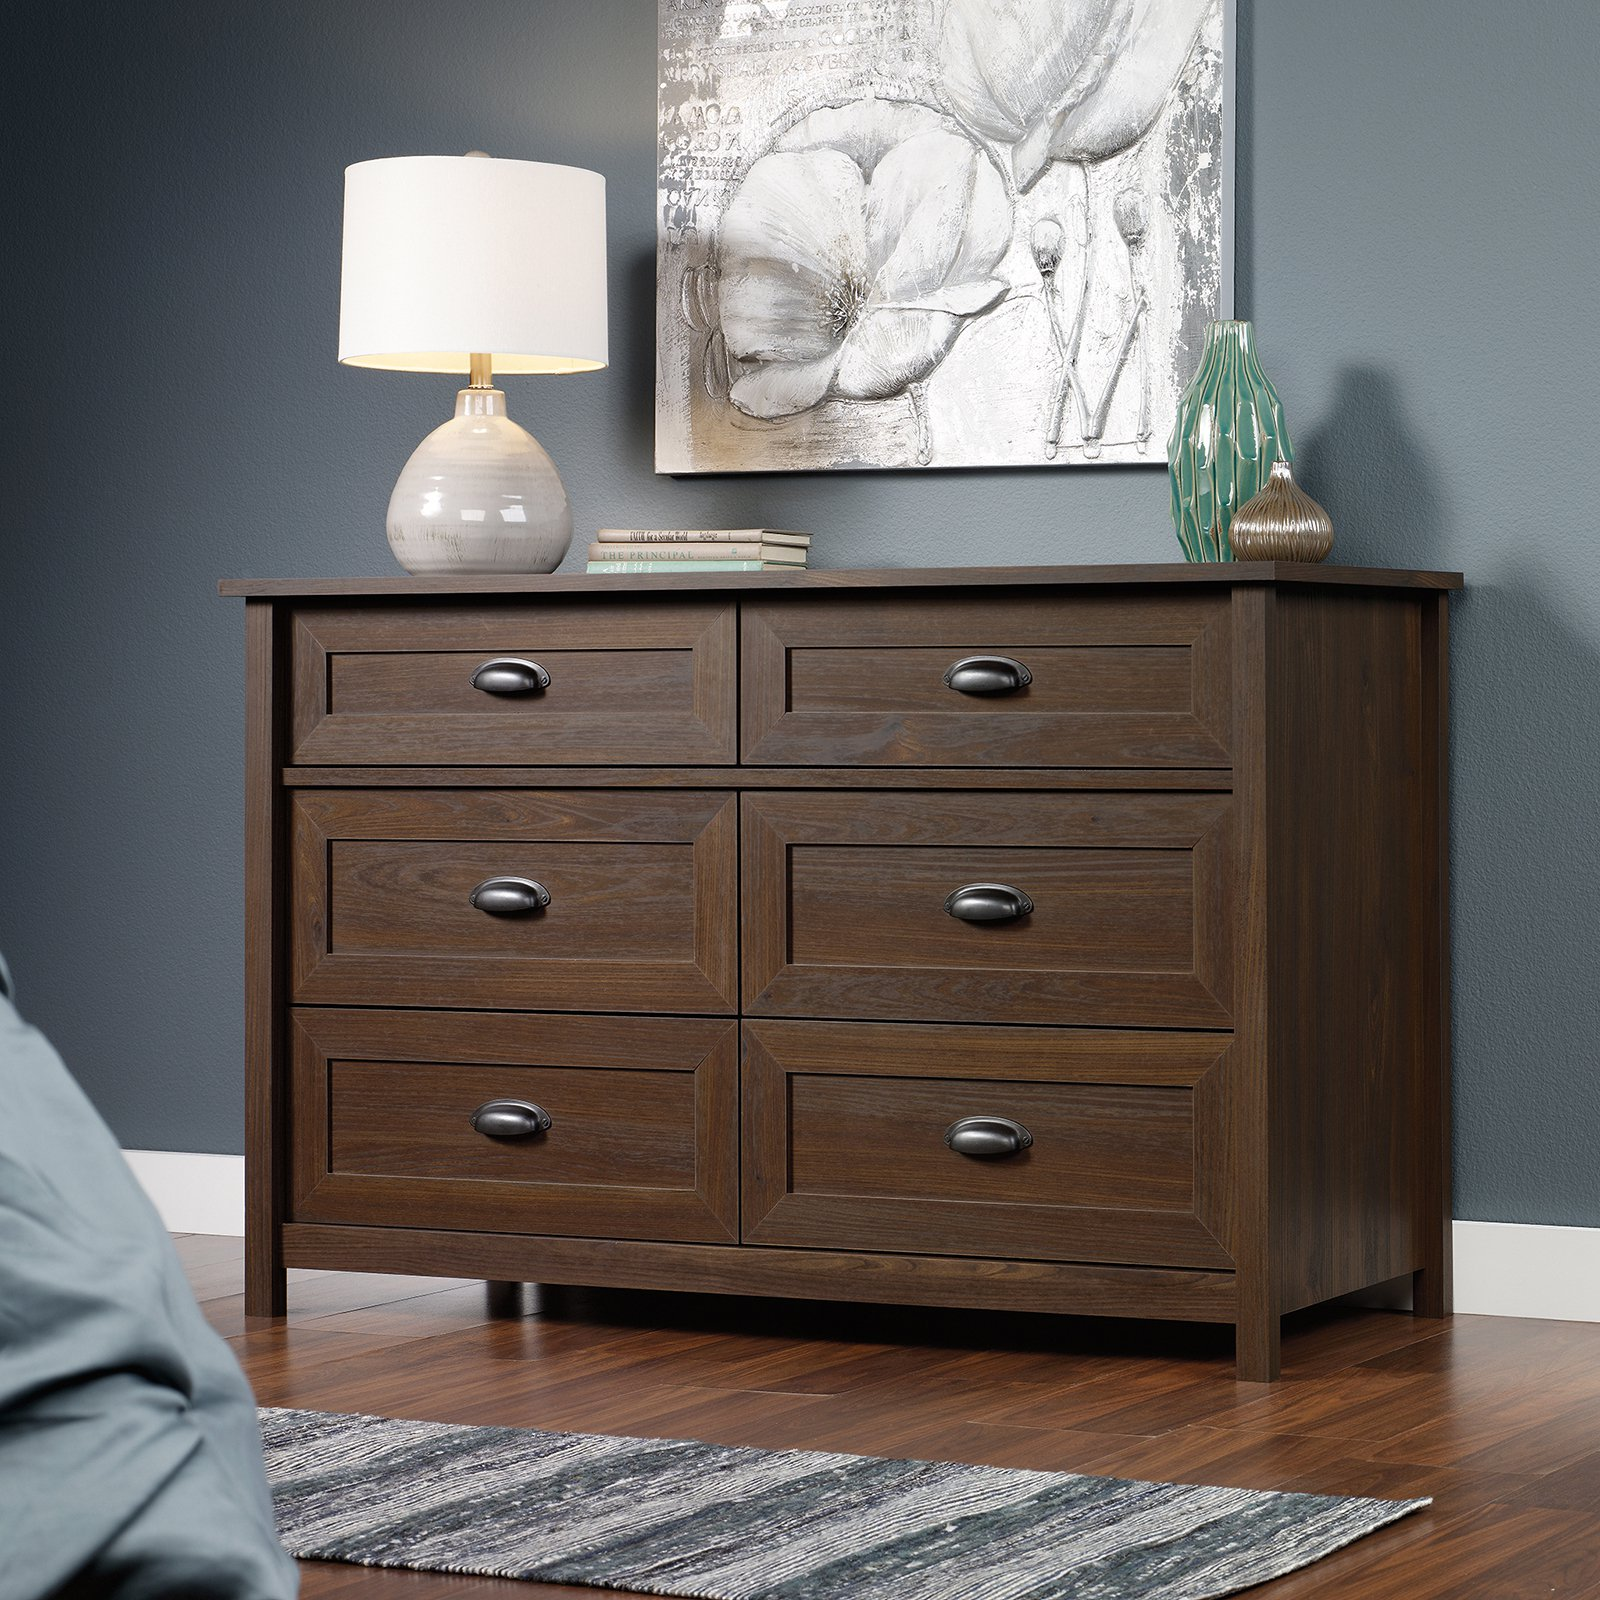 County Line 6 Drawer Dresser - Rum Walnut